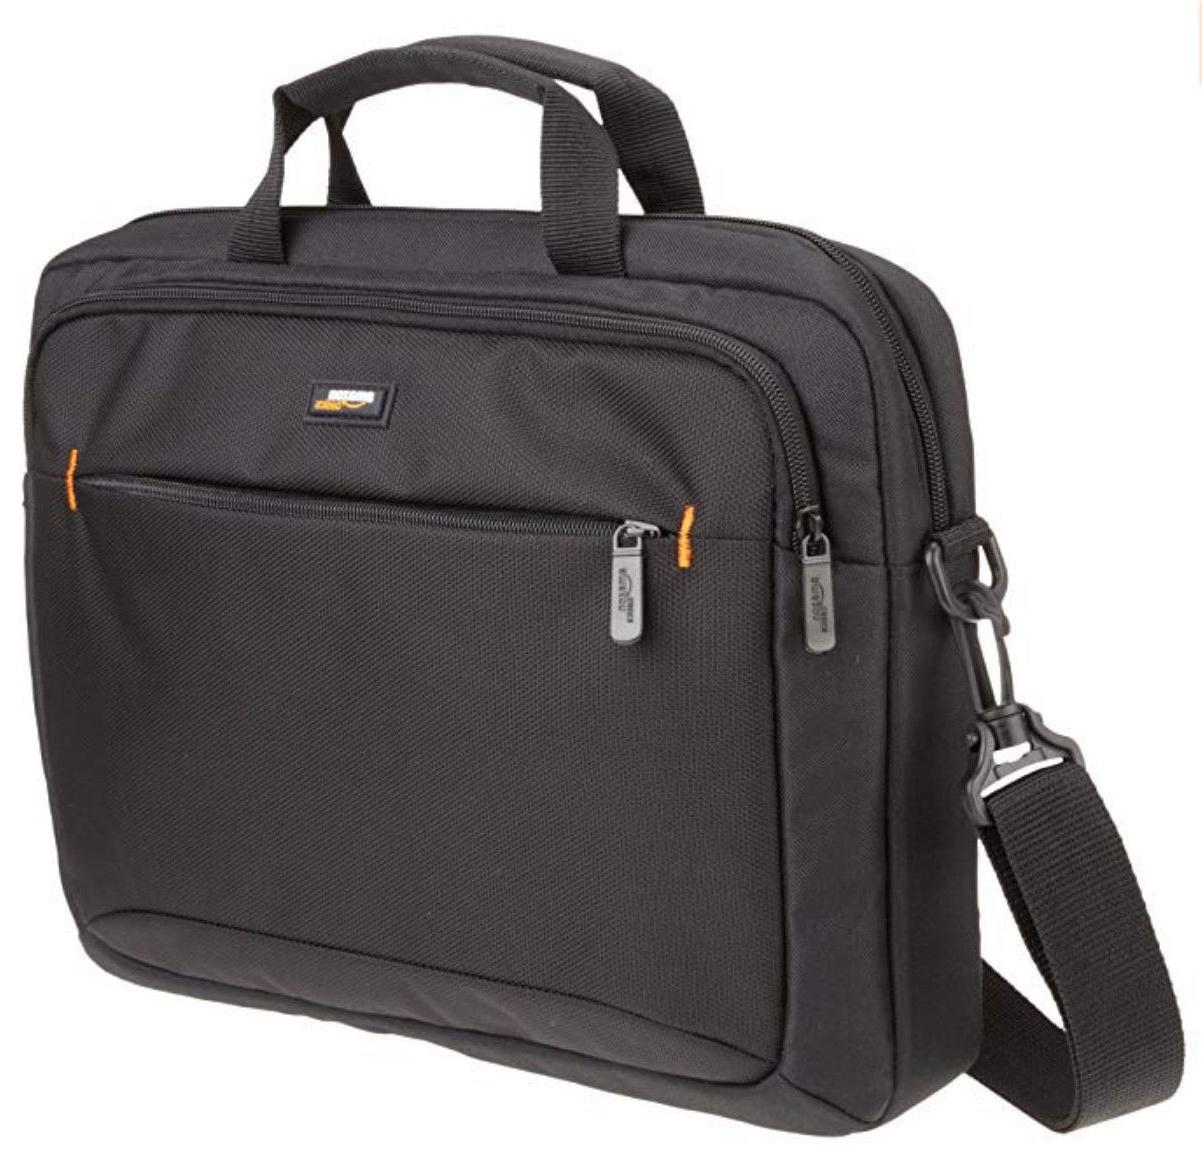 17 3 inch laptop bag free fast